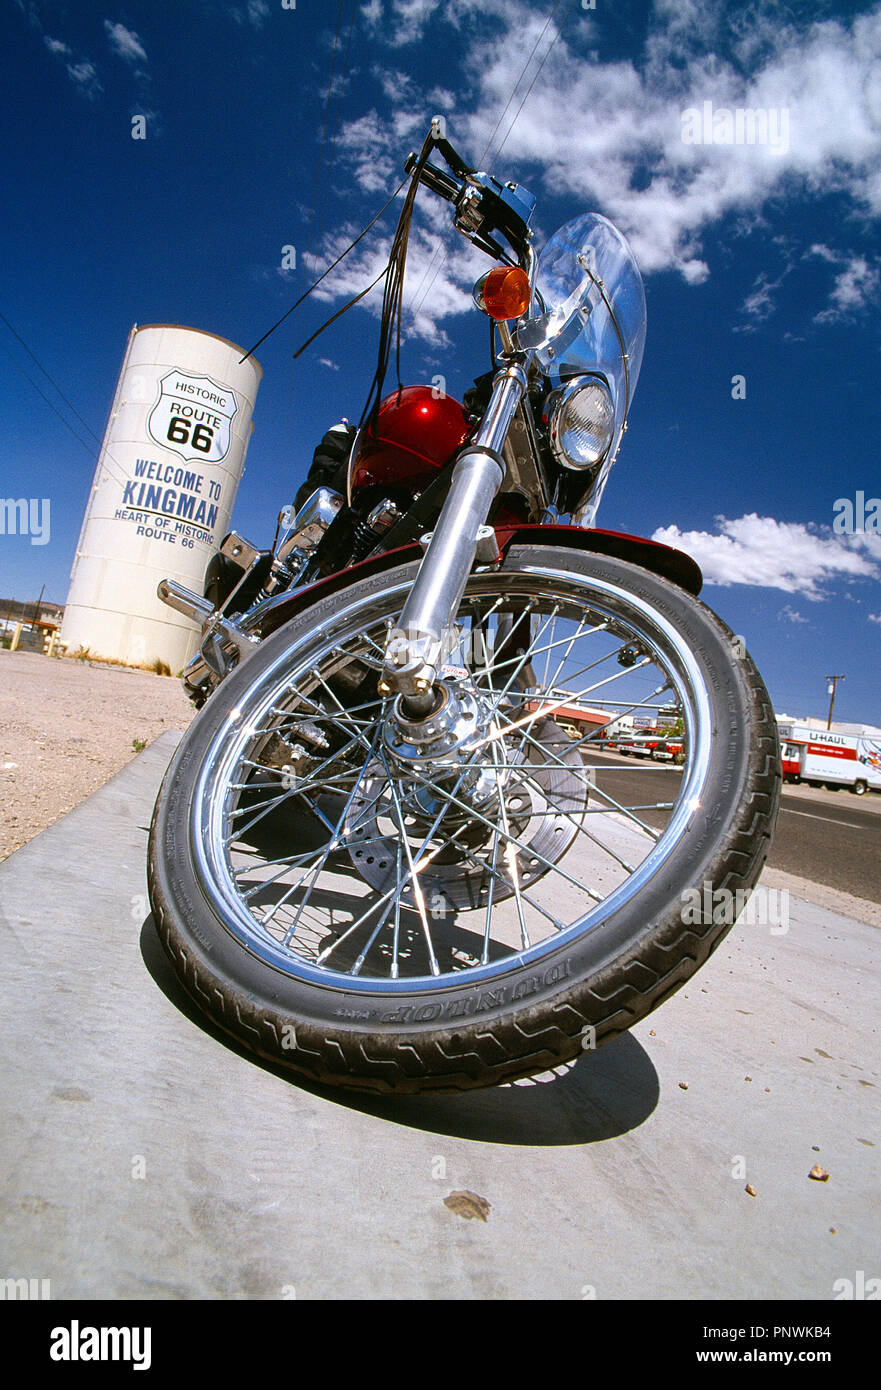 USA. Arizona, Kingman, Route 66. Low viewpoint close up of classic Harley-Davidson motorcycle. - Stock Image